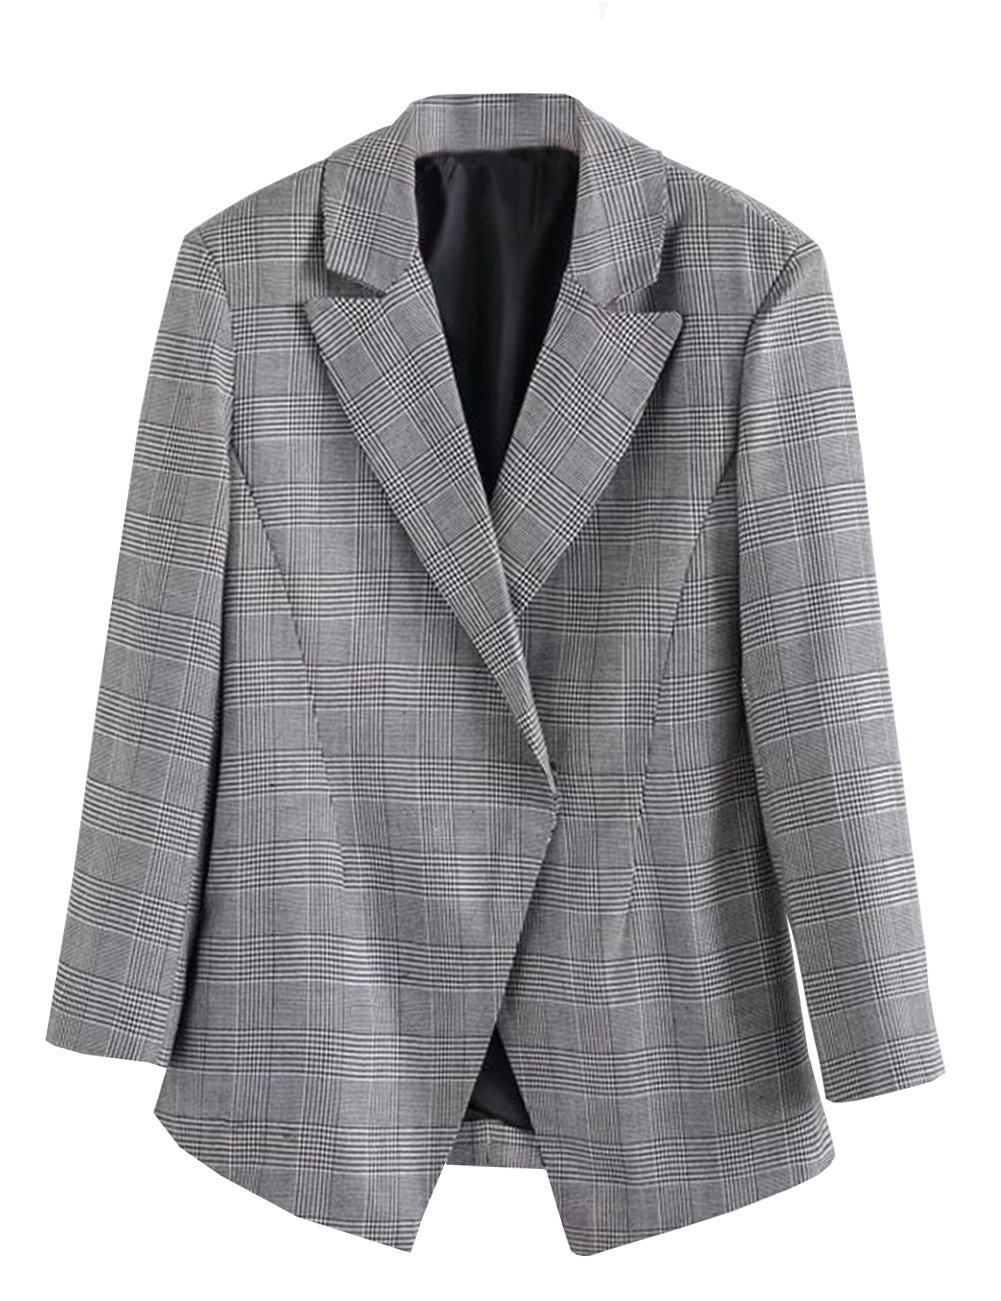 C2S Womens Jacket British Style Casual Back Vent Wedding Suit Coat WG002 (Grey, L)